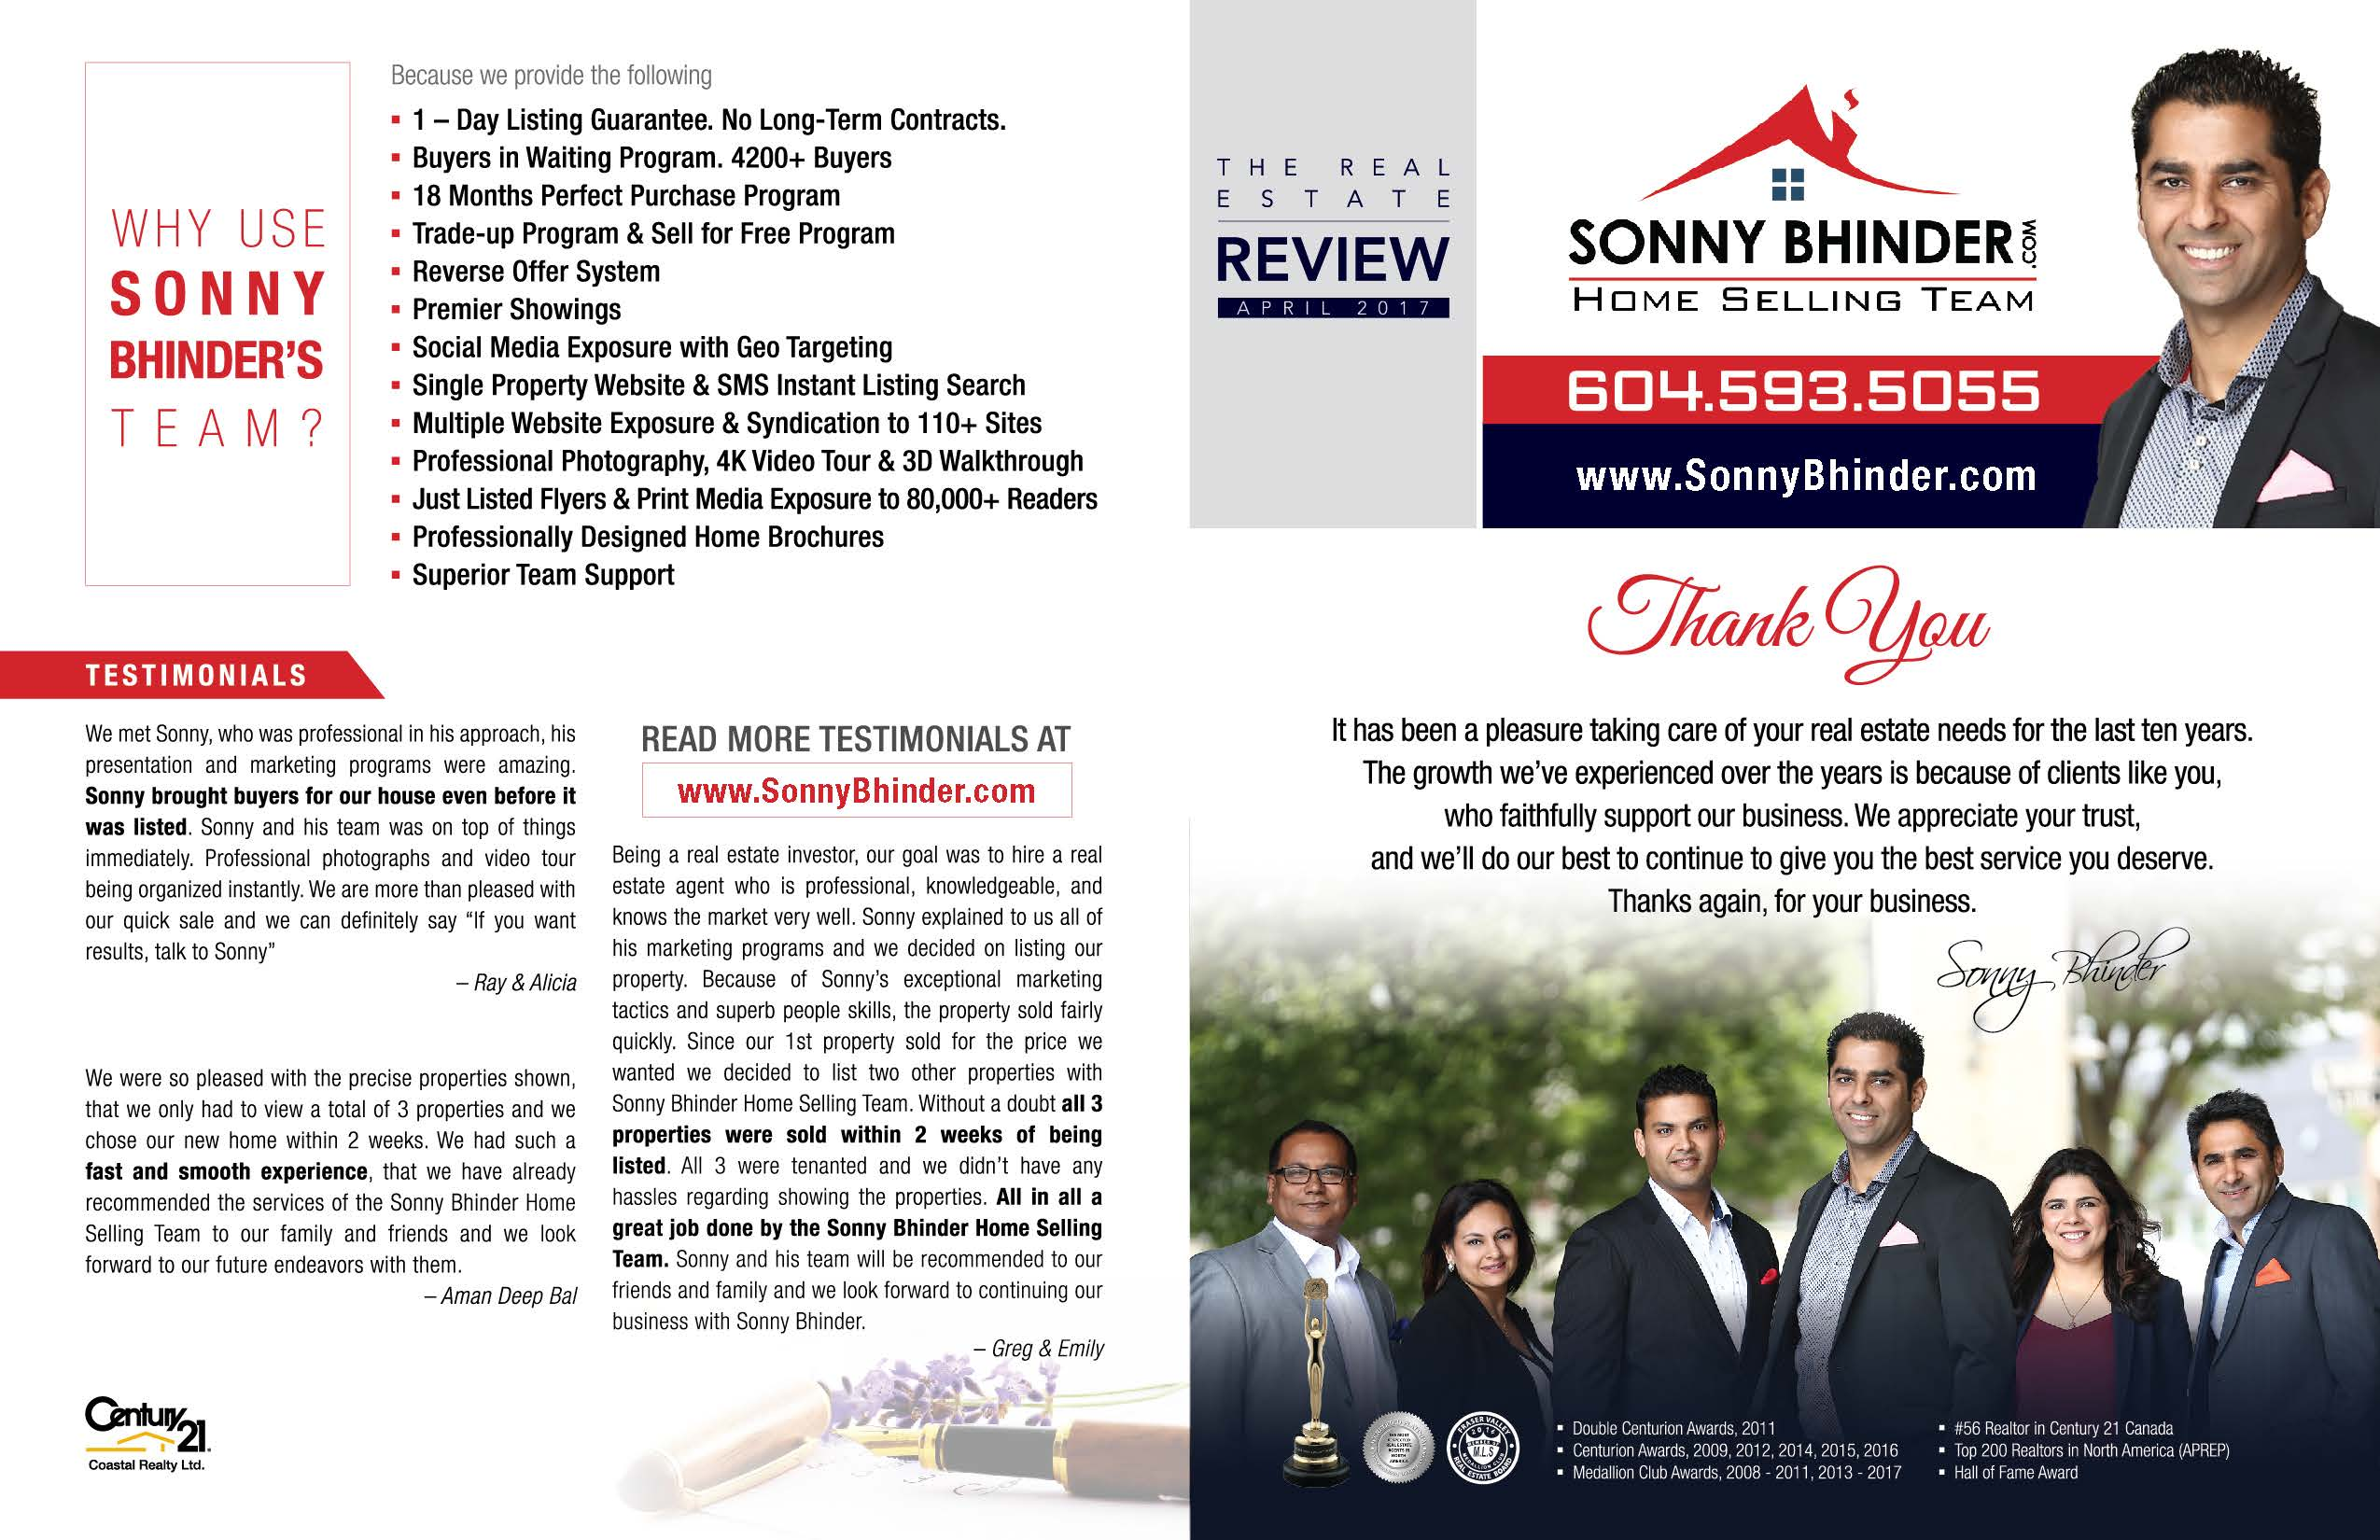 20170323 Sonny Bhinder - Newsletter for Email_Page_1.jpg